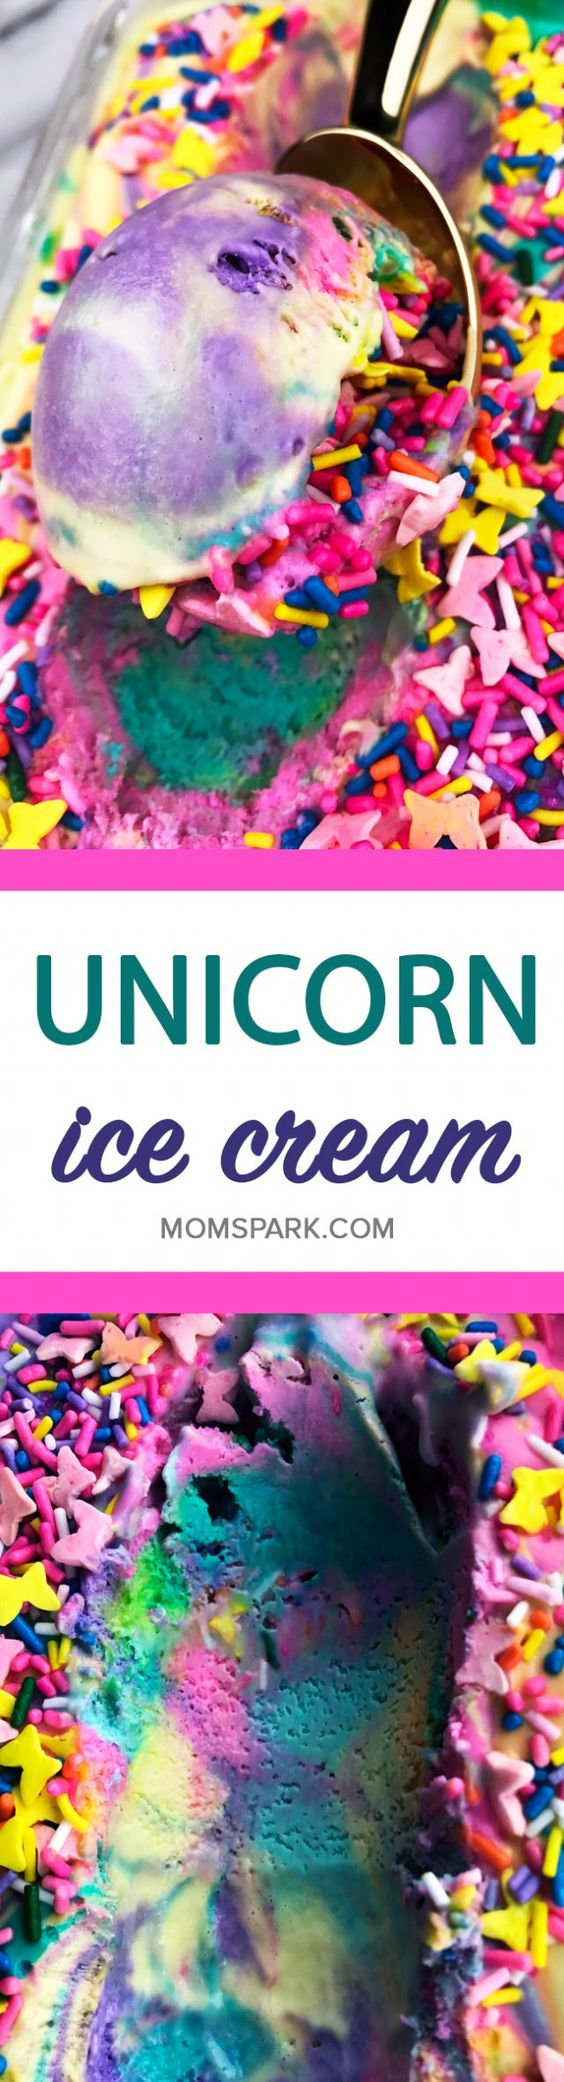 Unicorn desserts for a unicorn party: Rainbow Unicorn Ice Cream Recipe